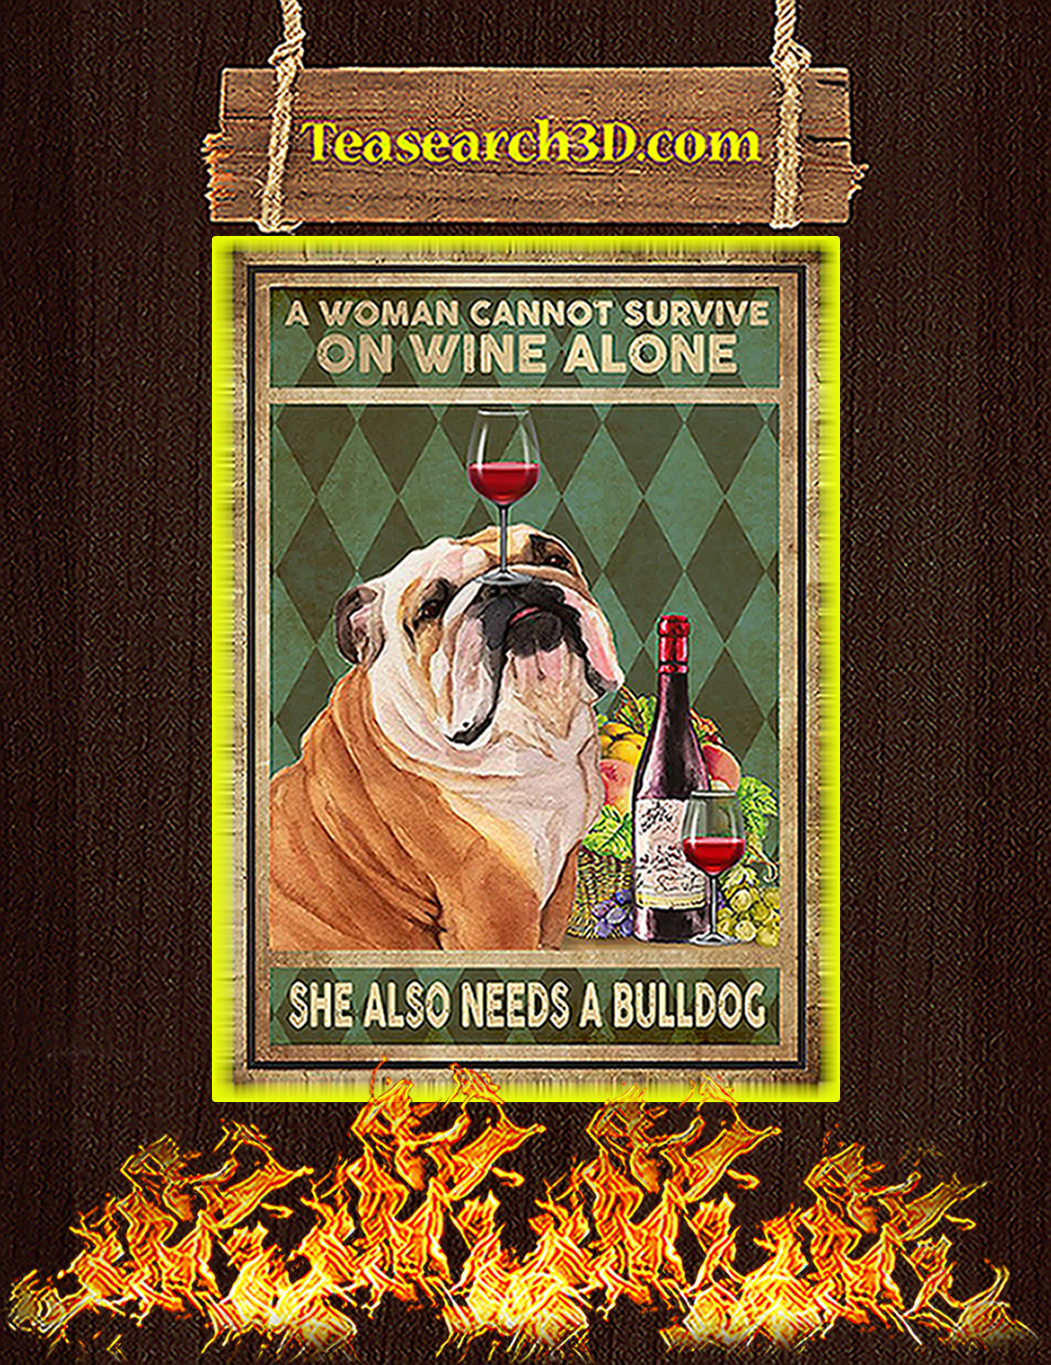 A woman cannot survive on wine alone she also needs a bulldog poster A1